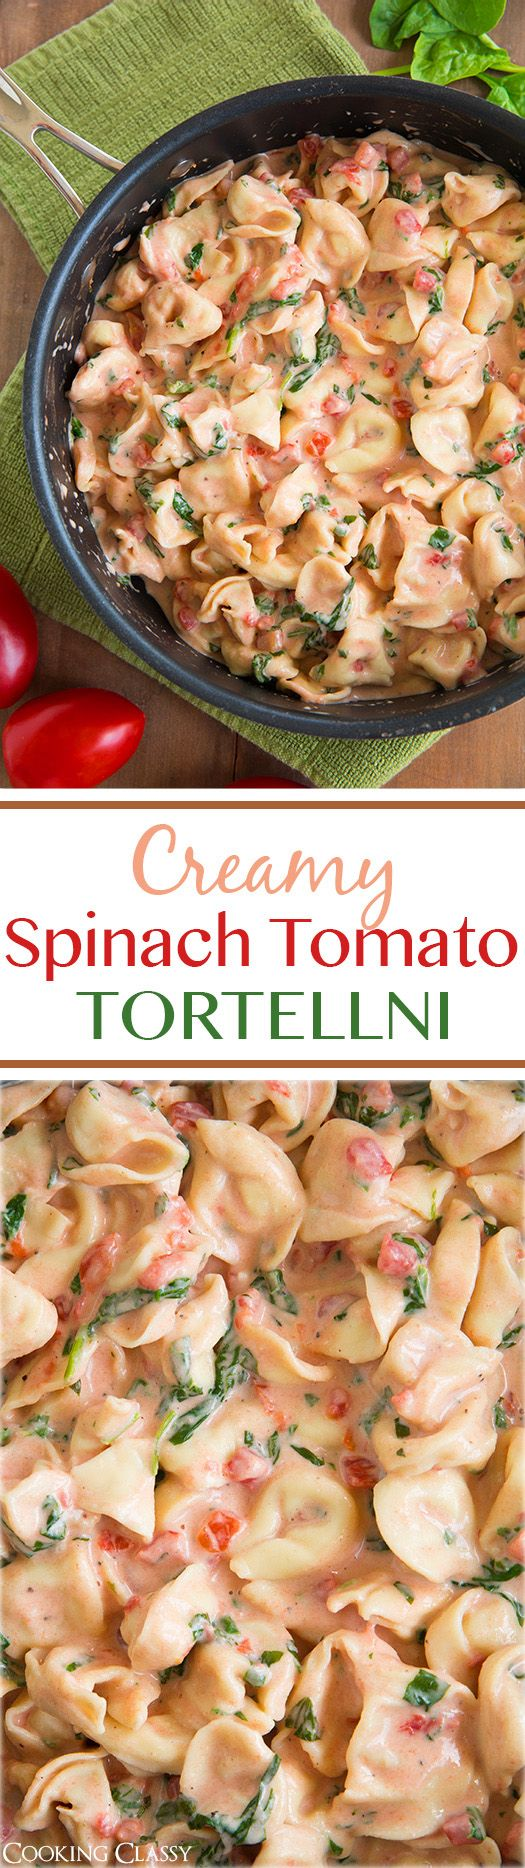 Recipe and Creamy Spinach cheap online Tomatoes websites Tomato Tortellini   Tortellini  shopping Spinach